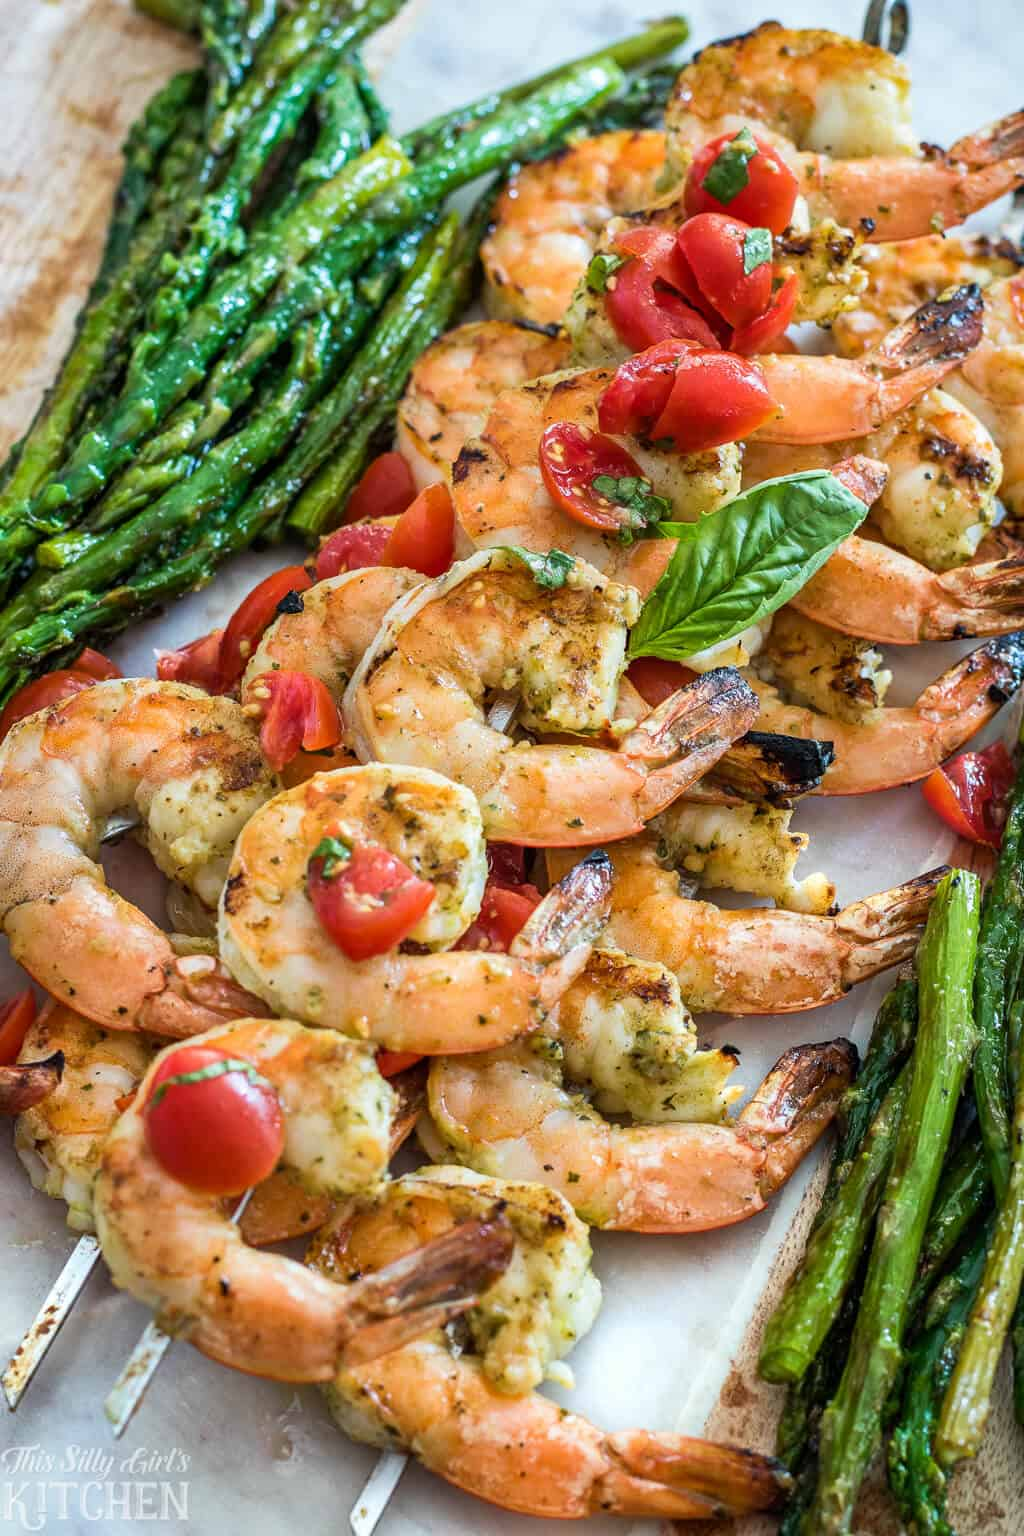 Grilled Shrimp on Skewers topped with Bruschetta